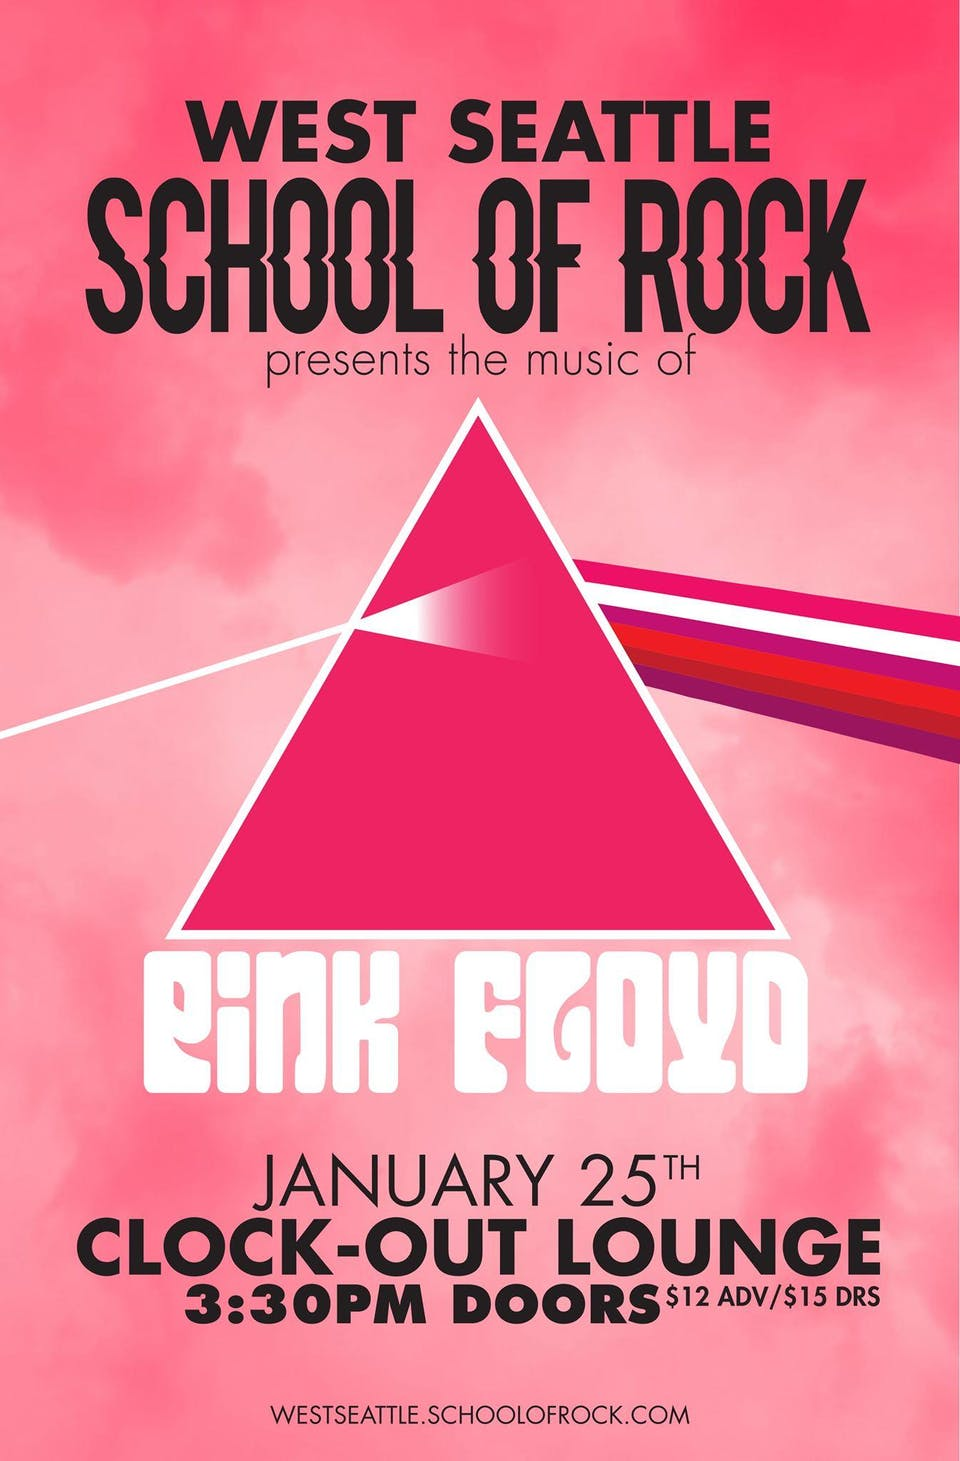 West Seattle School of Rock performs Pink Floyd